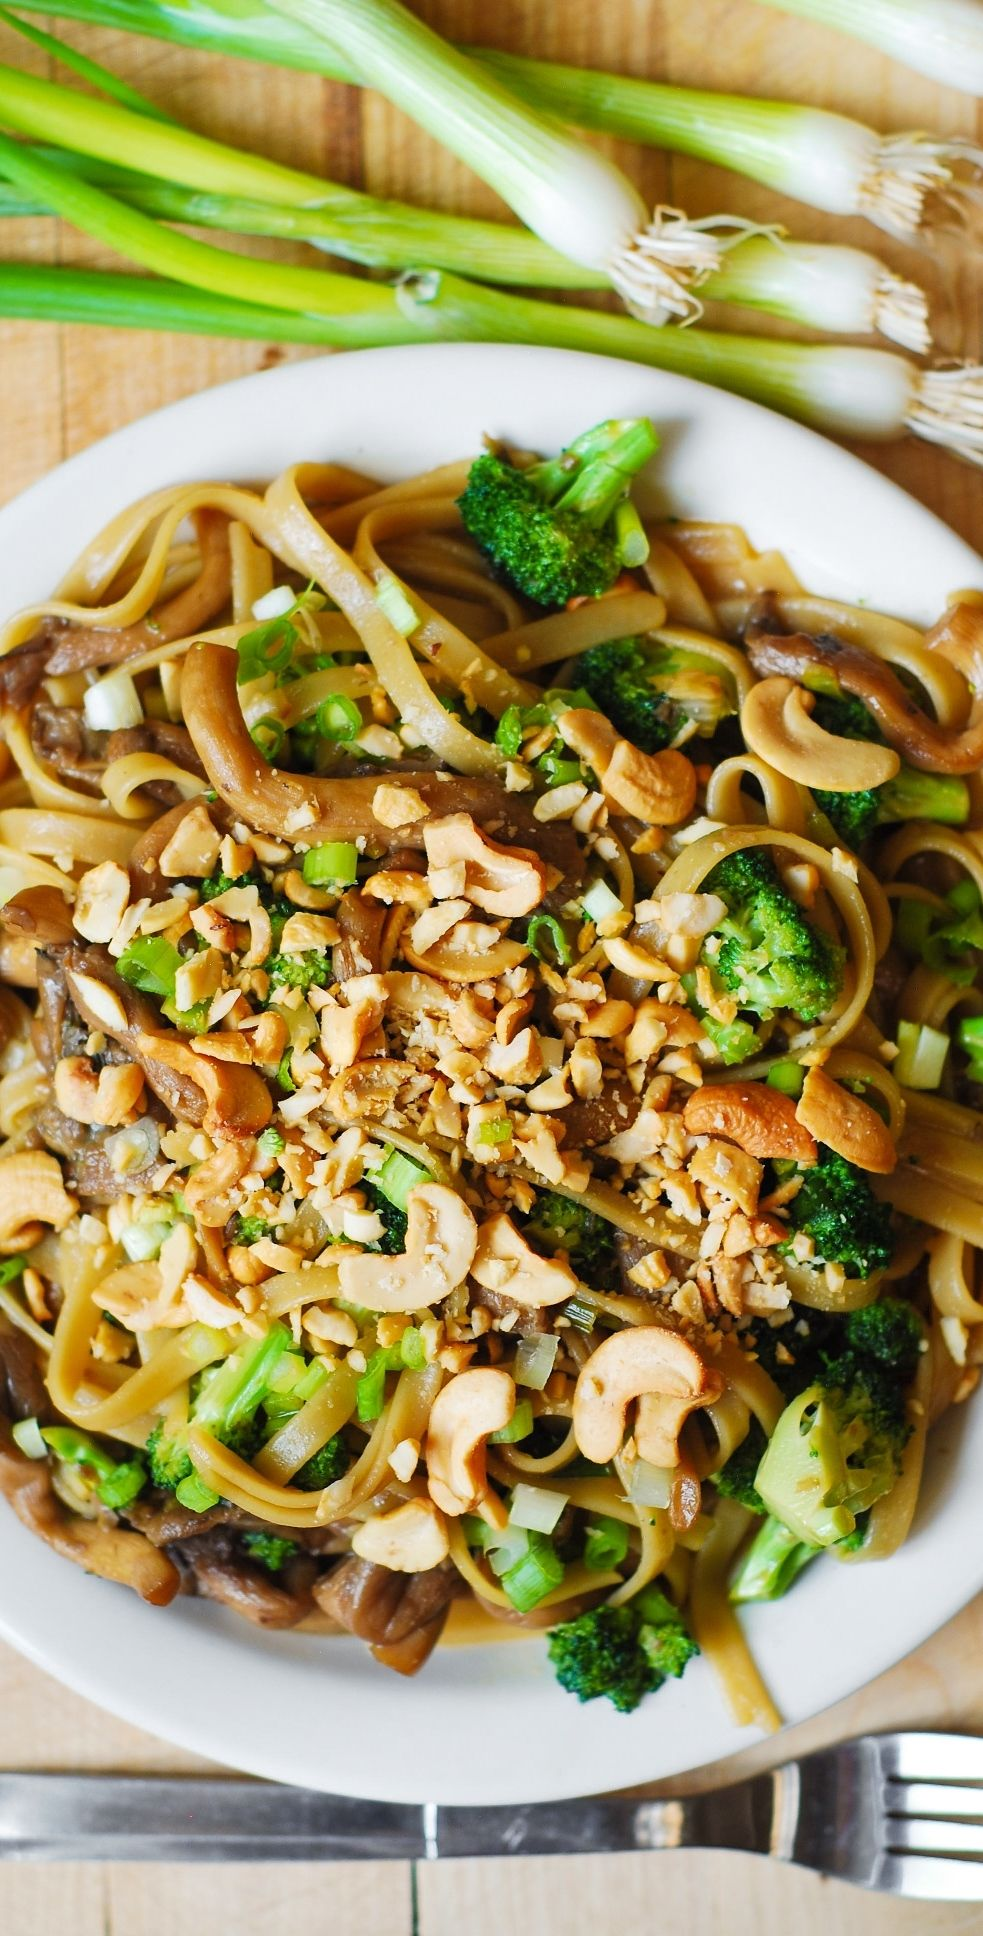 Asian Flavored Pasta With Broccoli And Oyster Mushrooms Vegetarian Gluten Free Recipe Using Fettuc Asian Pasta Oyster Mushroom Recipe Mushroom Recipes Pasta